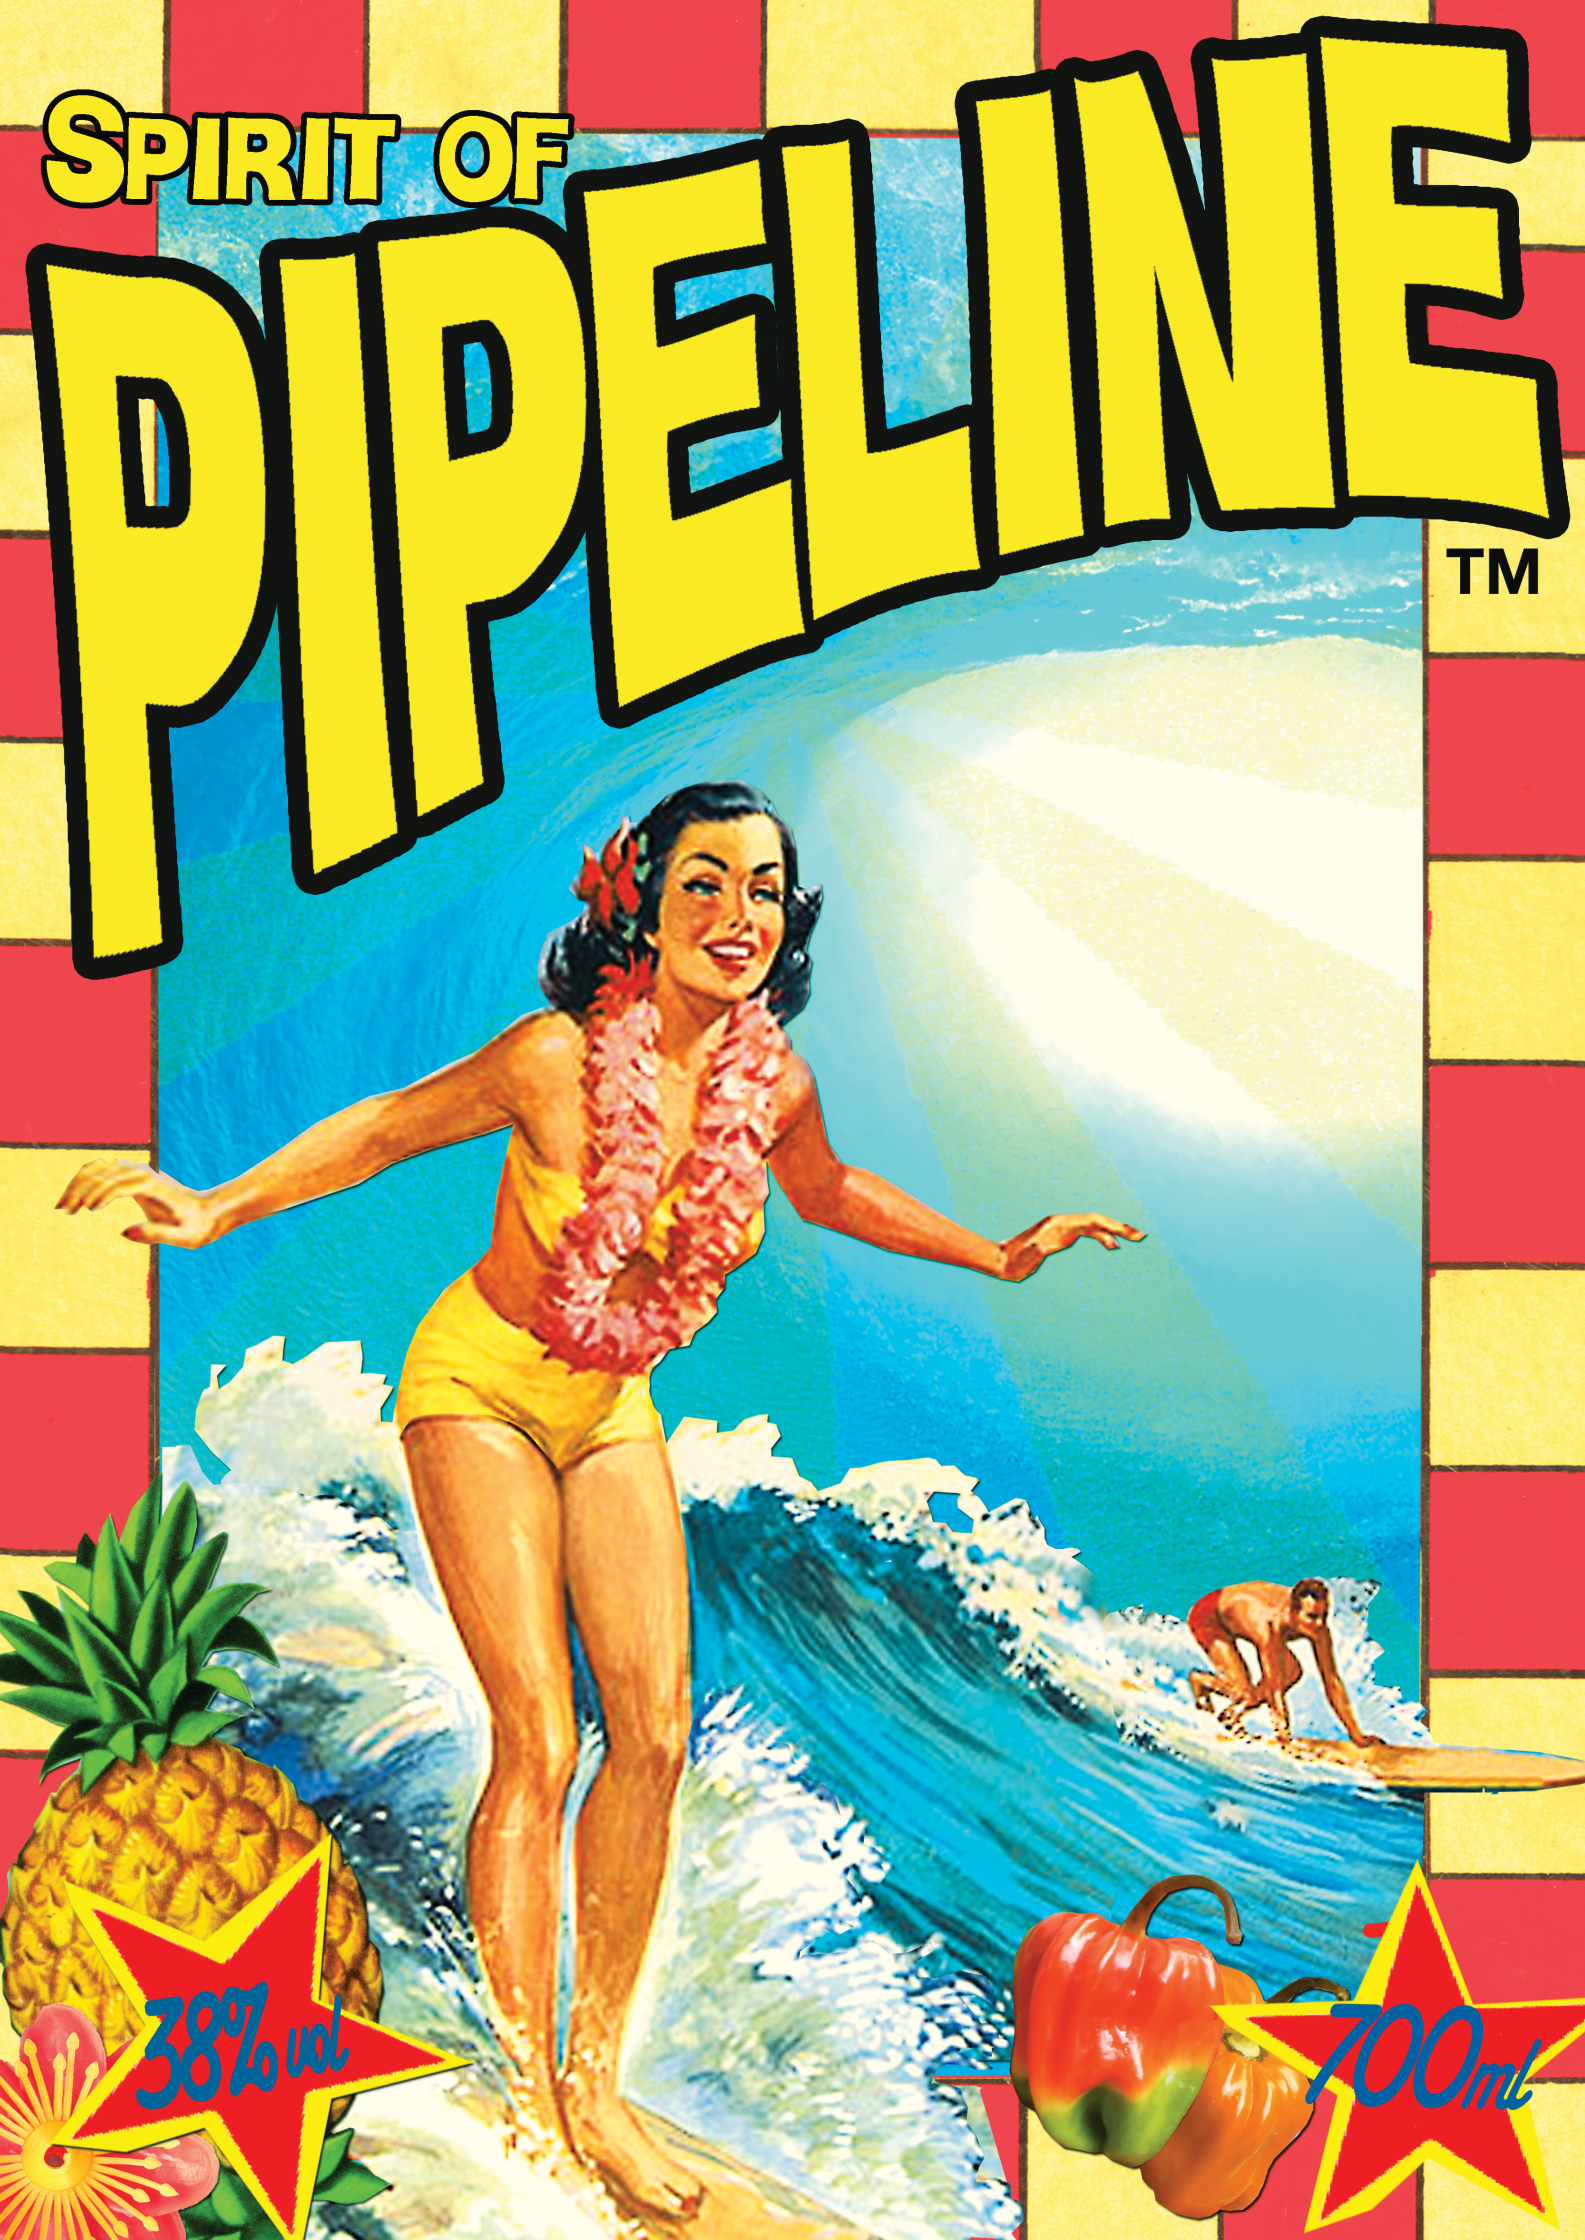 spiritofpipeline bottle lable.jpg